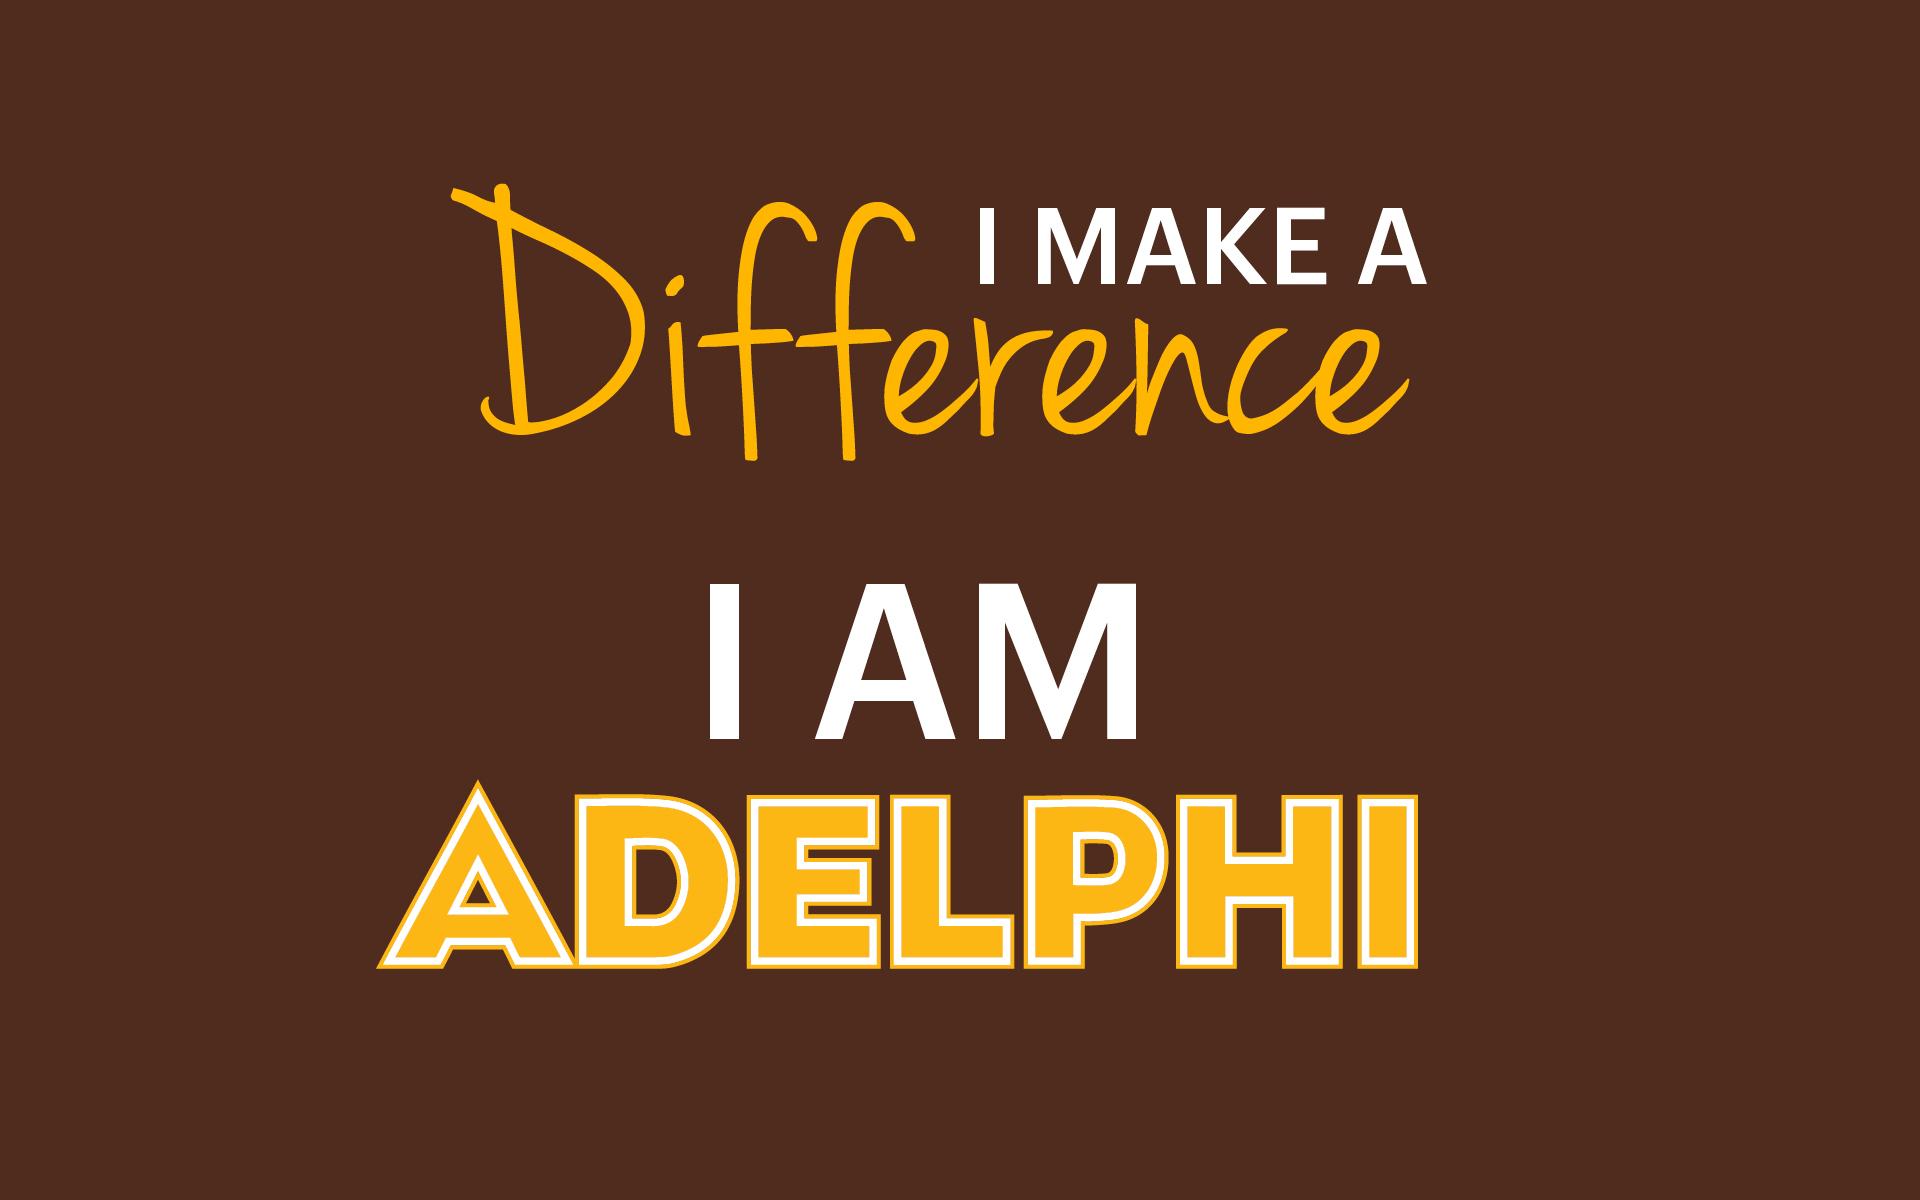 Adelphi I Make a Difference Wallpaper - Design Preview